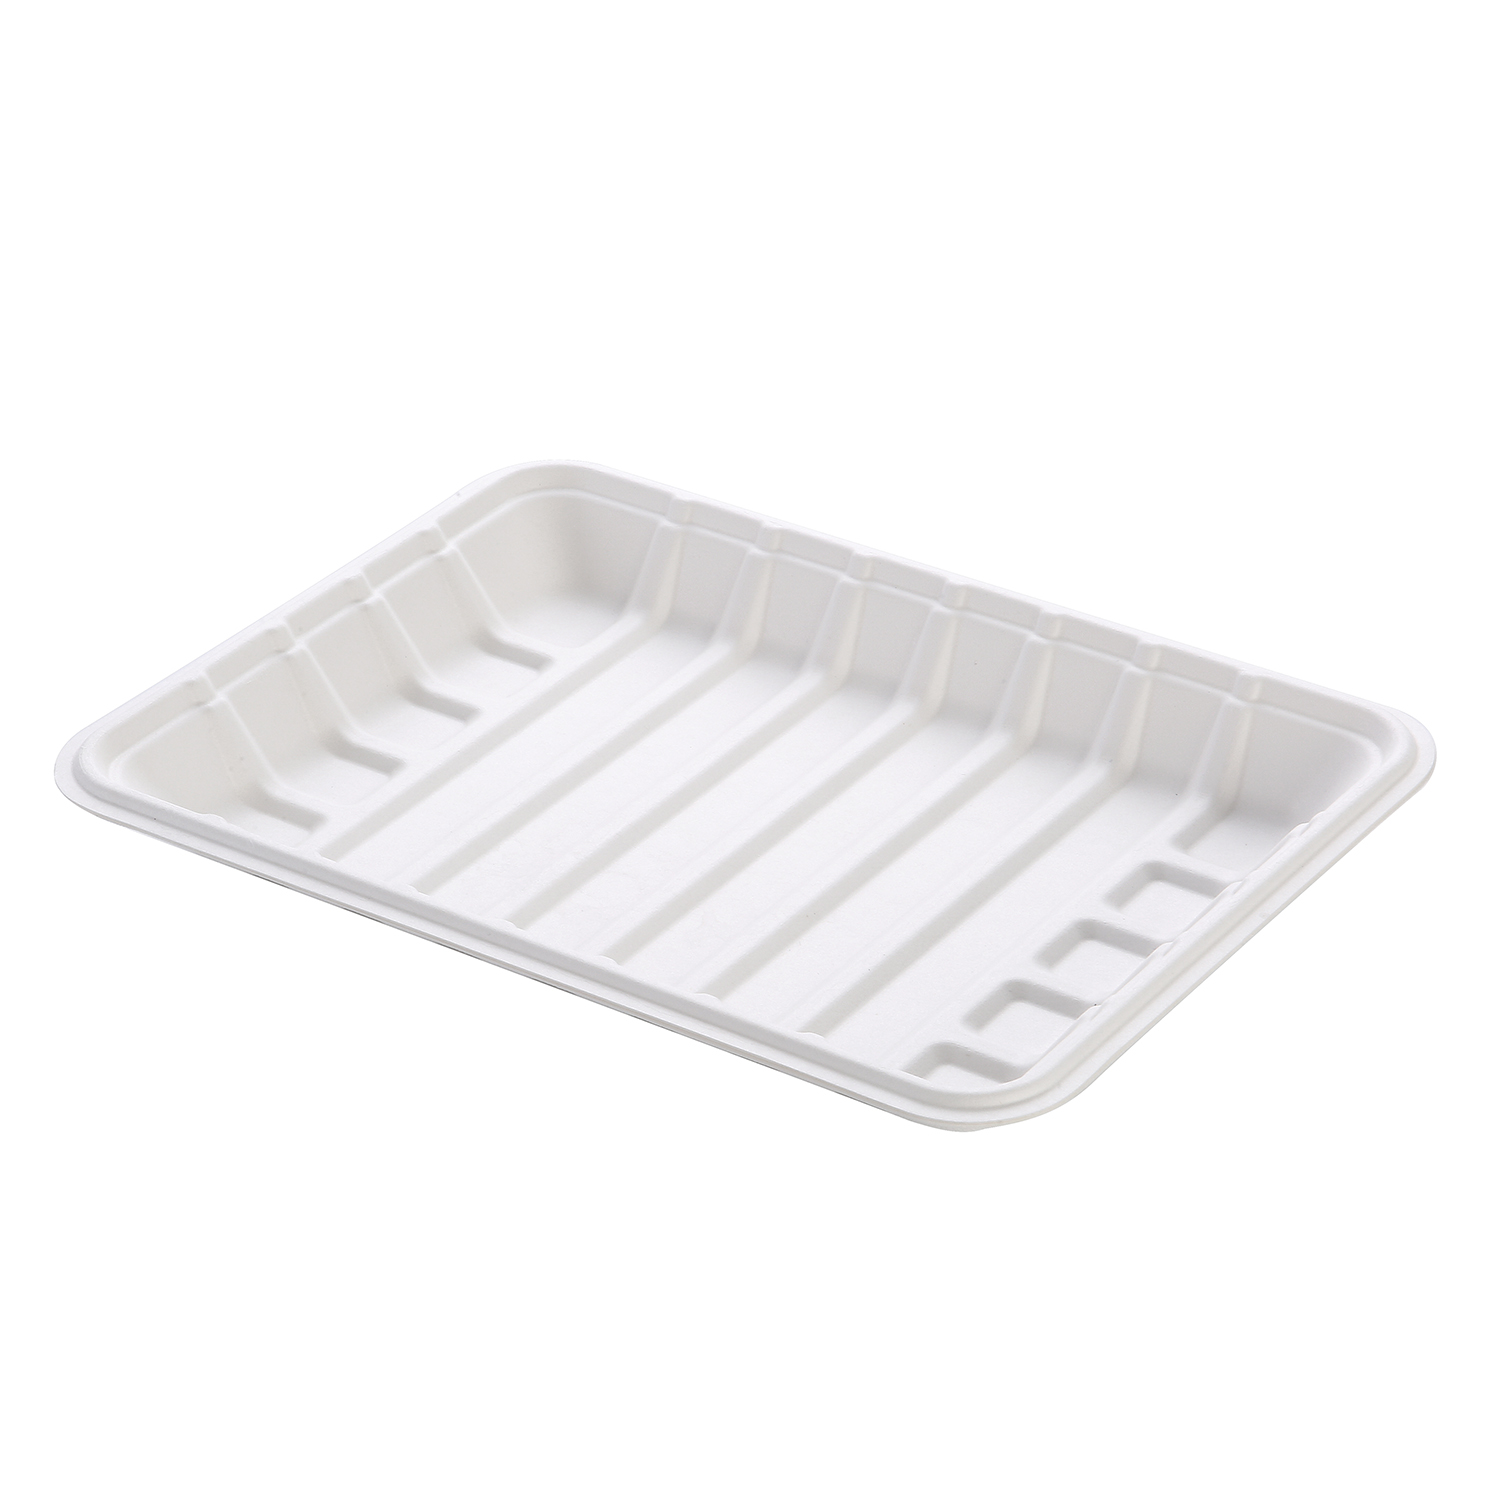 240(L)x175(W)x23(H)mm Eco Friendly Sugarcane Meat Tray